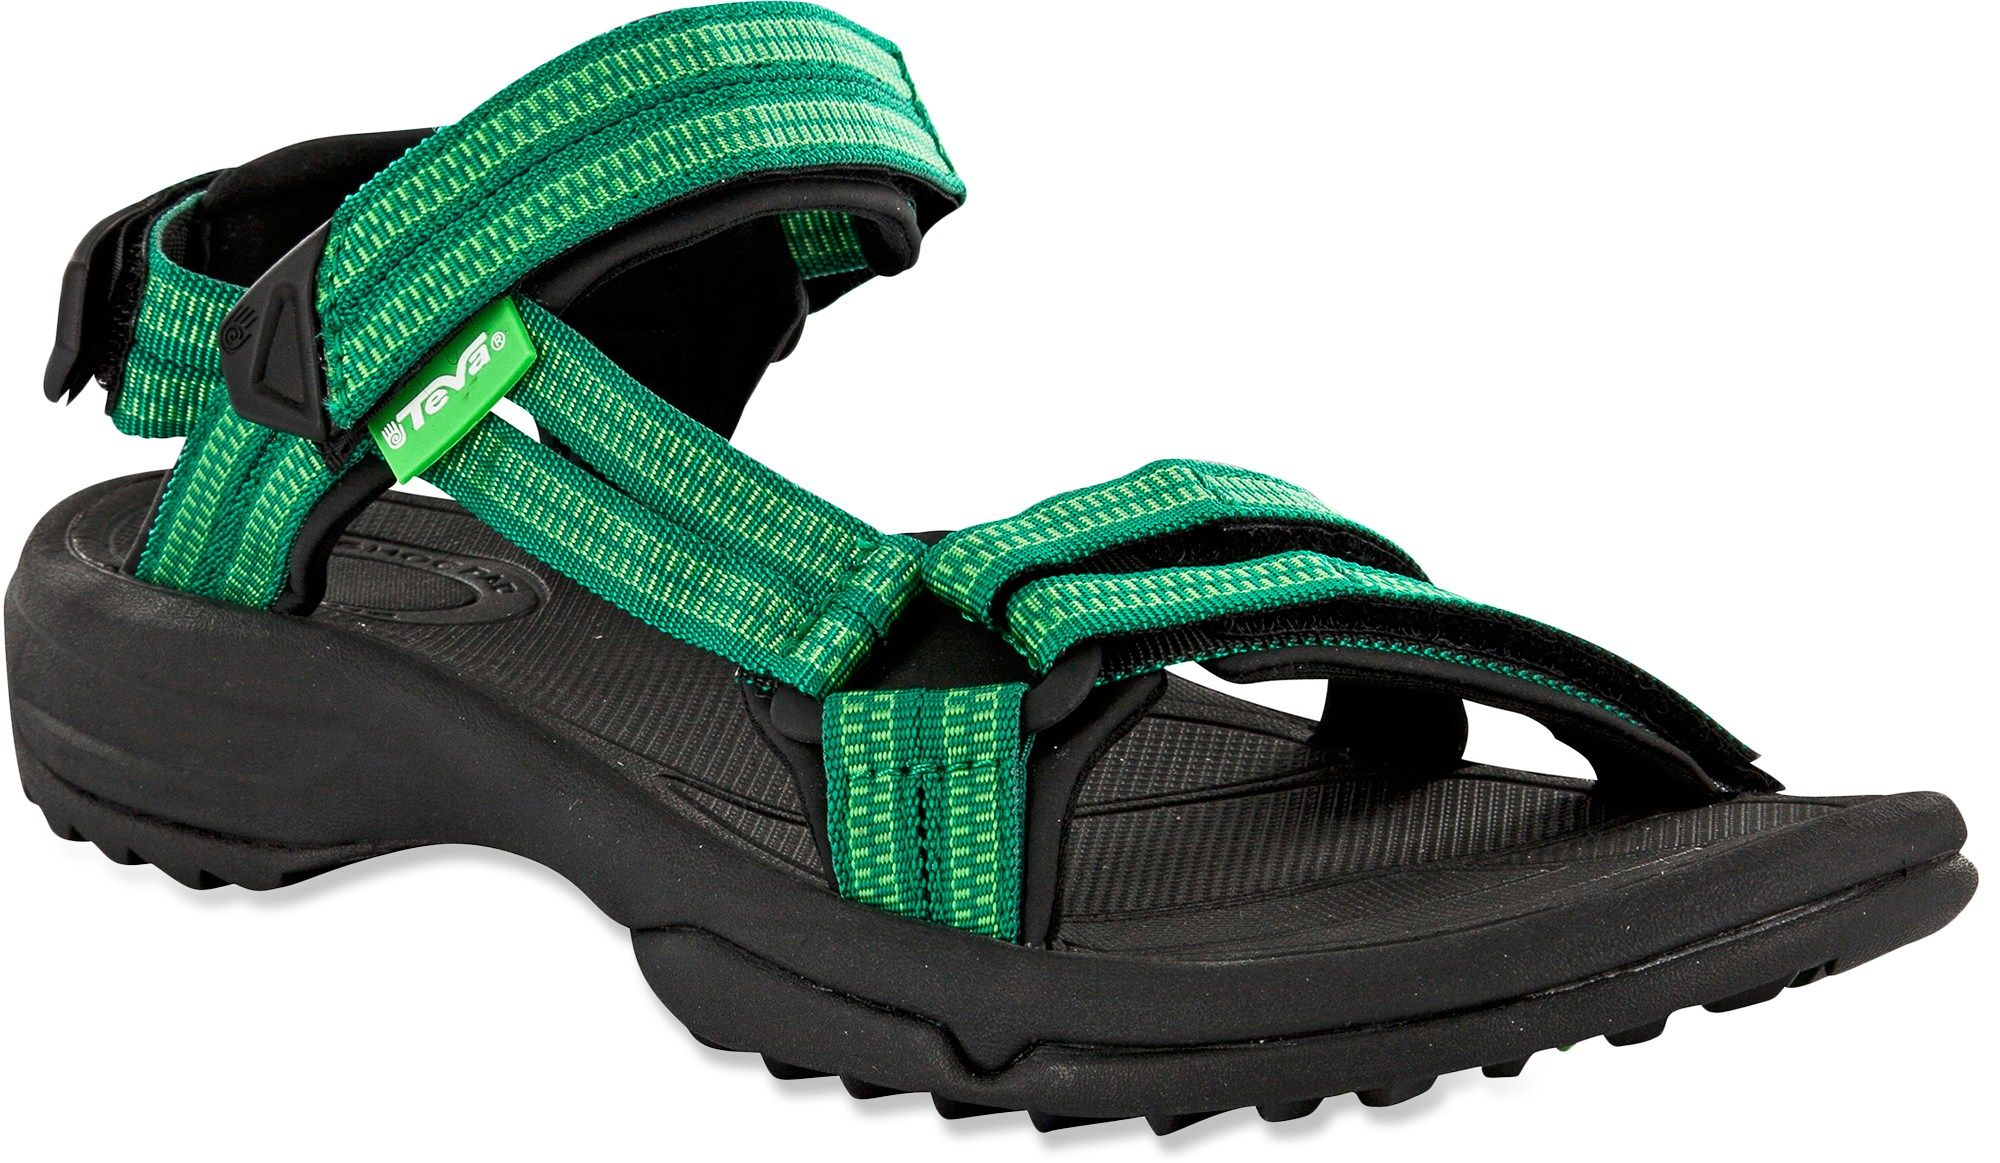 31e2caa36c3a Teva Terra Fi Lite Sandals - Women s - Free Shipping at REI.com